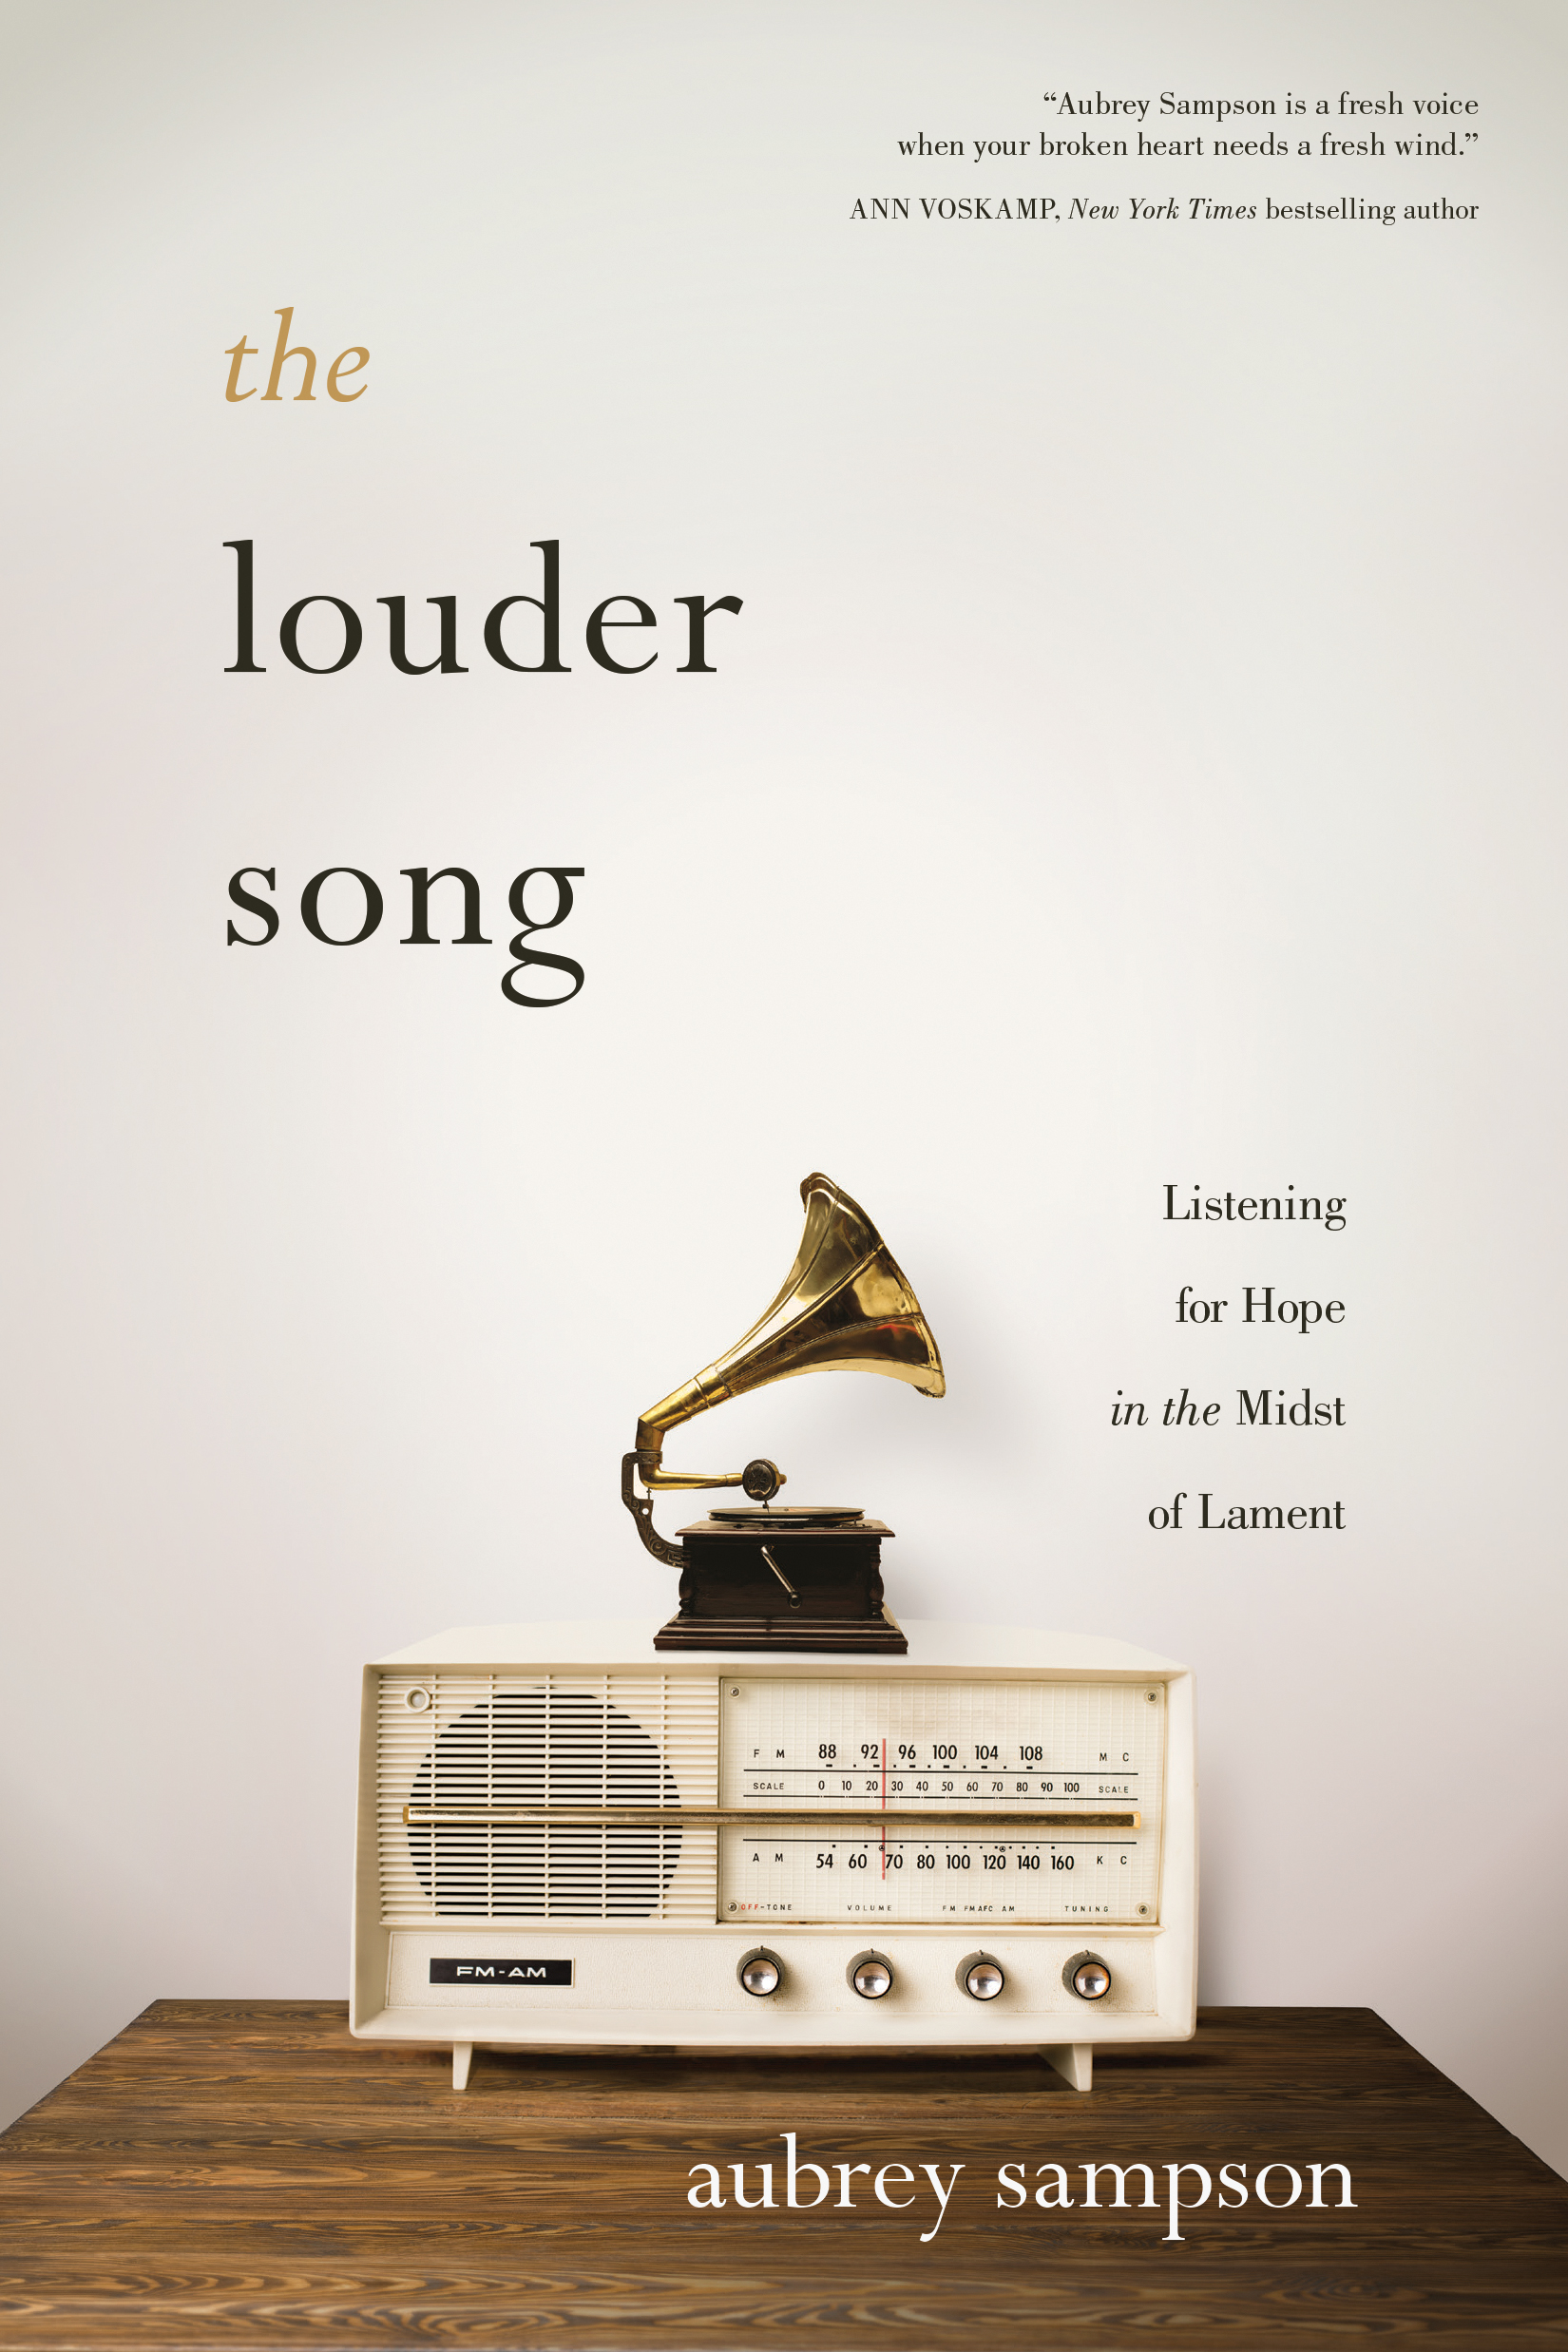 The Louder Song by Aubrey Sampson ISBN: 978-1-63146-902-2 Softcover: $15.99 February 2019  NavPress.com